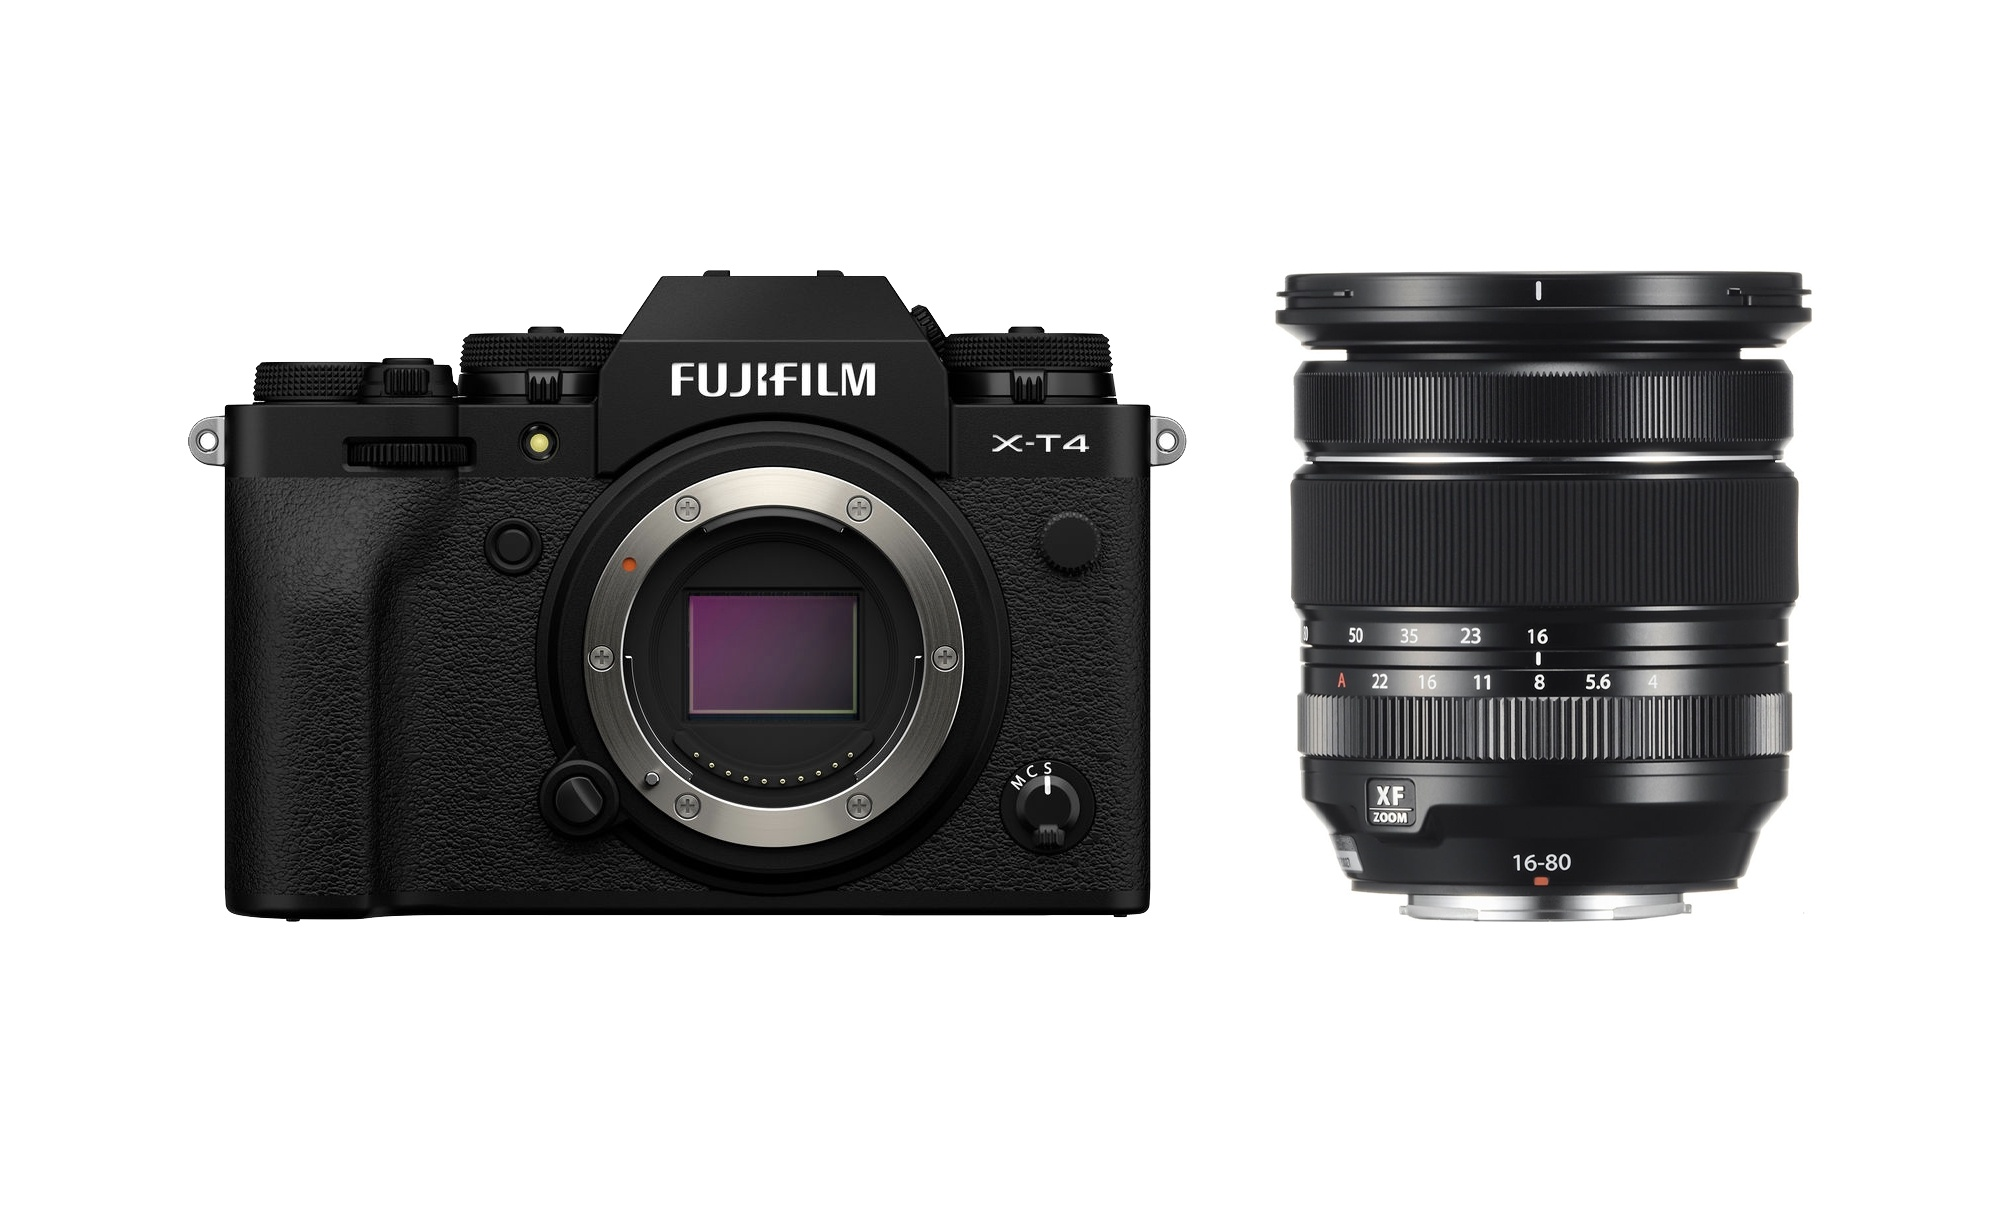 Fujifilm X-T4 Mirrorless Digital Camera with 16-80mm Lens (Black)